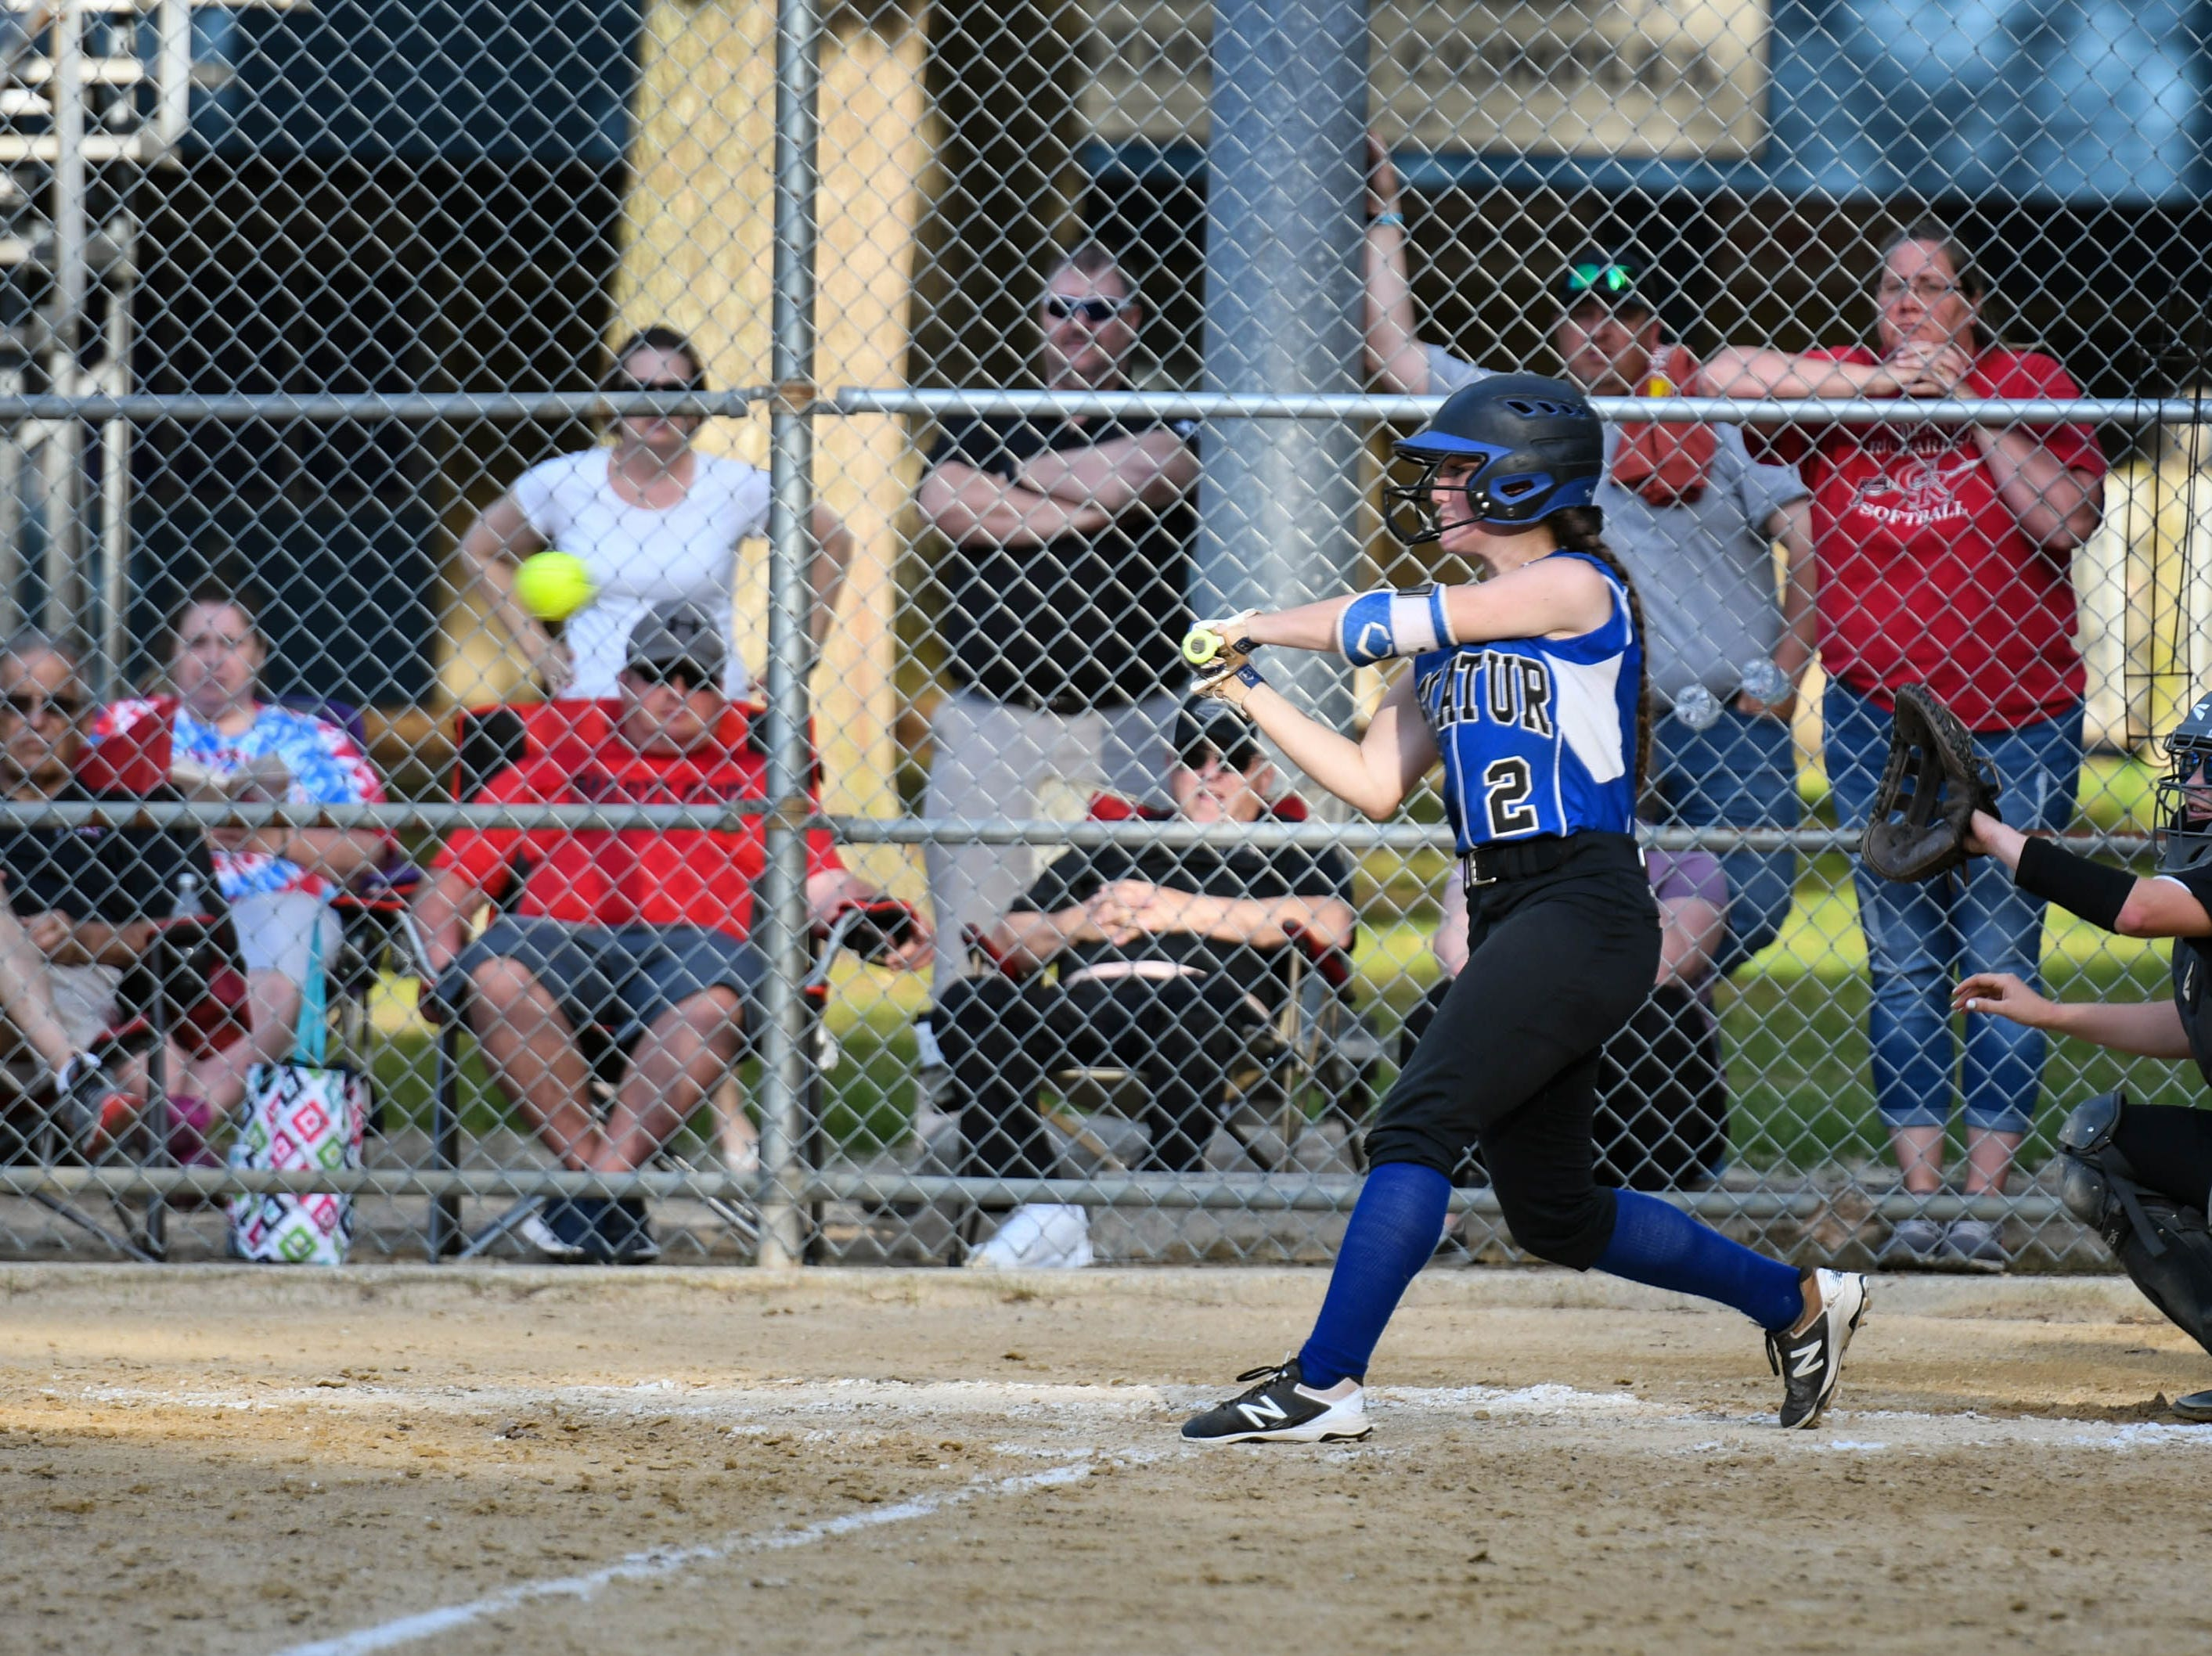 Decatur's Skylar Griffan (2) bats up against Colonel Richardson in the Bayside Softball Championship game on Wednesday, May 8, 2019. Decatur prevailed with a score of 4 to 1.